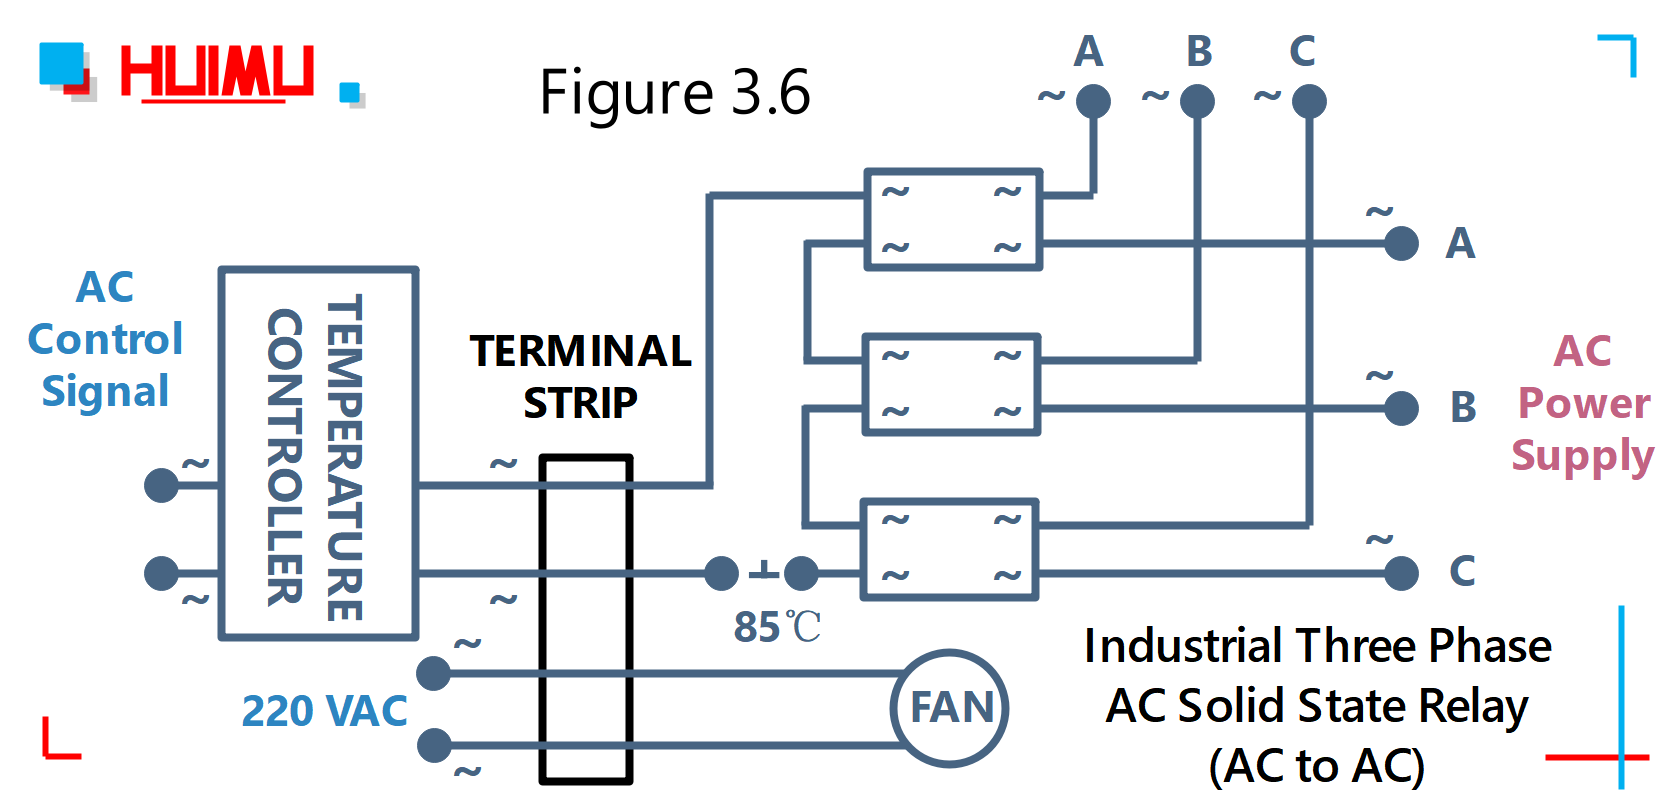 industrial three phase AC solid state relay (DC to AC) wiring diagram and circuit diagram Type 6